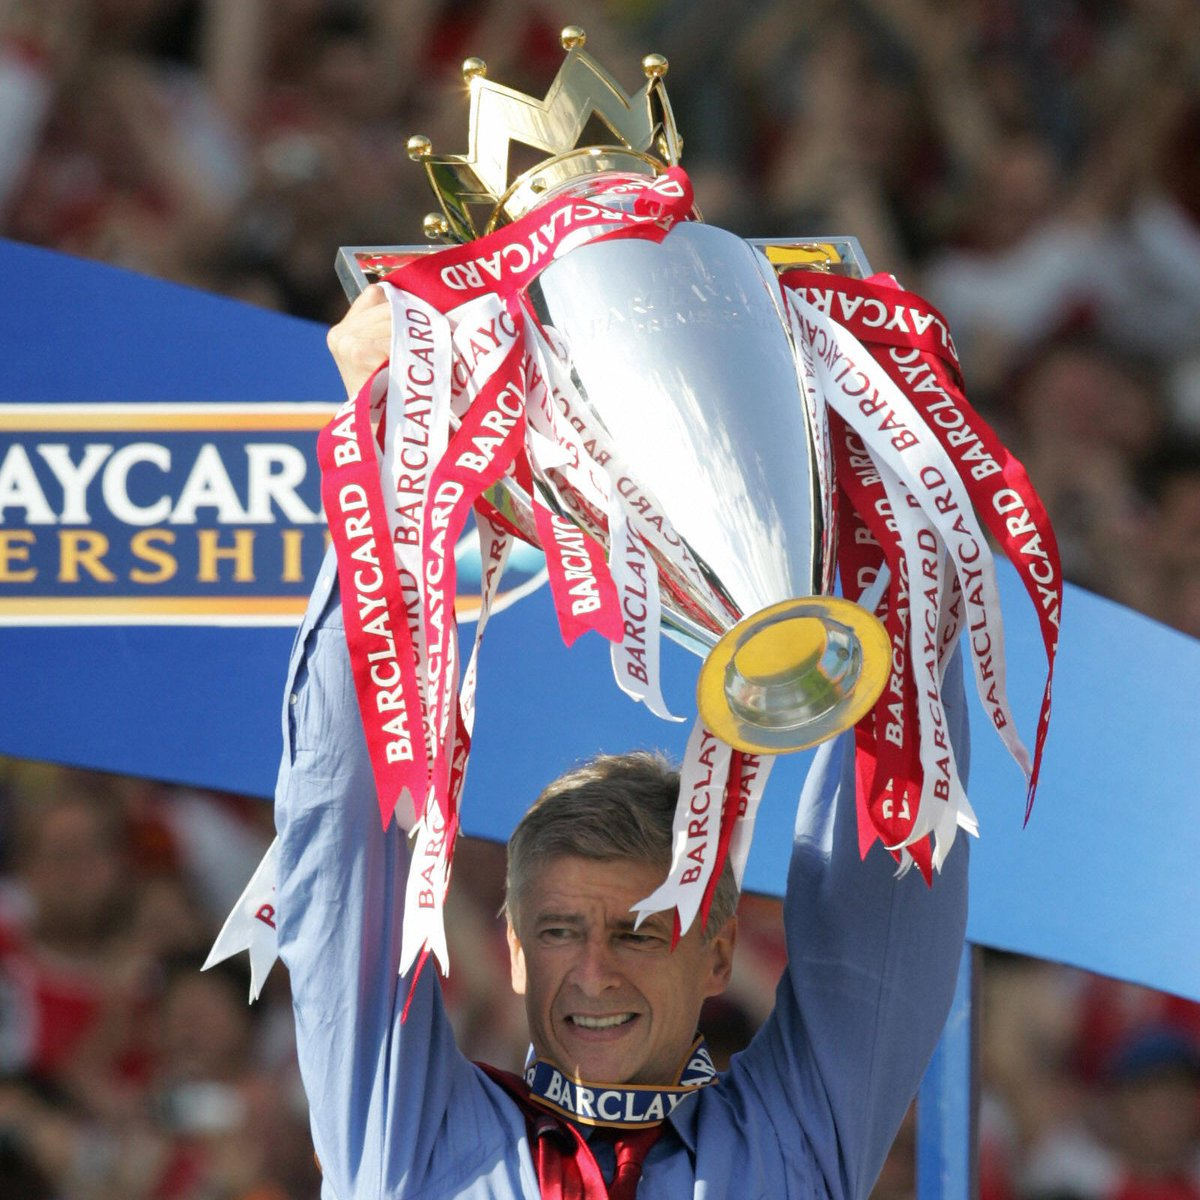 22 years. 1,235 games. 2,298 goals. 716 wins. 49, 49 undefeated. 7 FA Cups. 3 @premierleague titles. 2 Doubles. Won the league at Old Trafford. Won the league at White Hart Lane. Invincible. Legend.  🎶 There's only one Arsène Wenger 🎶